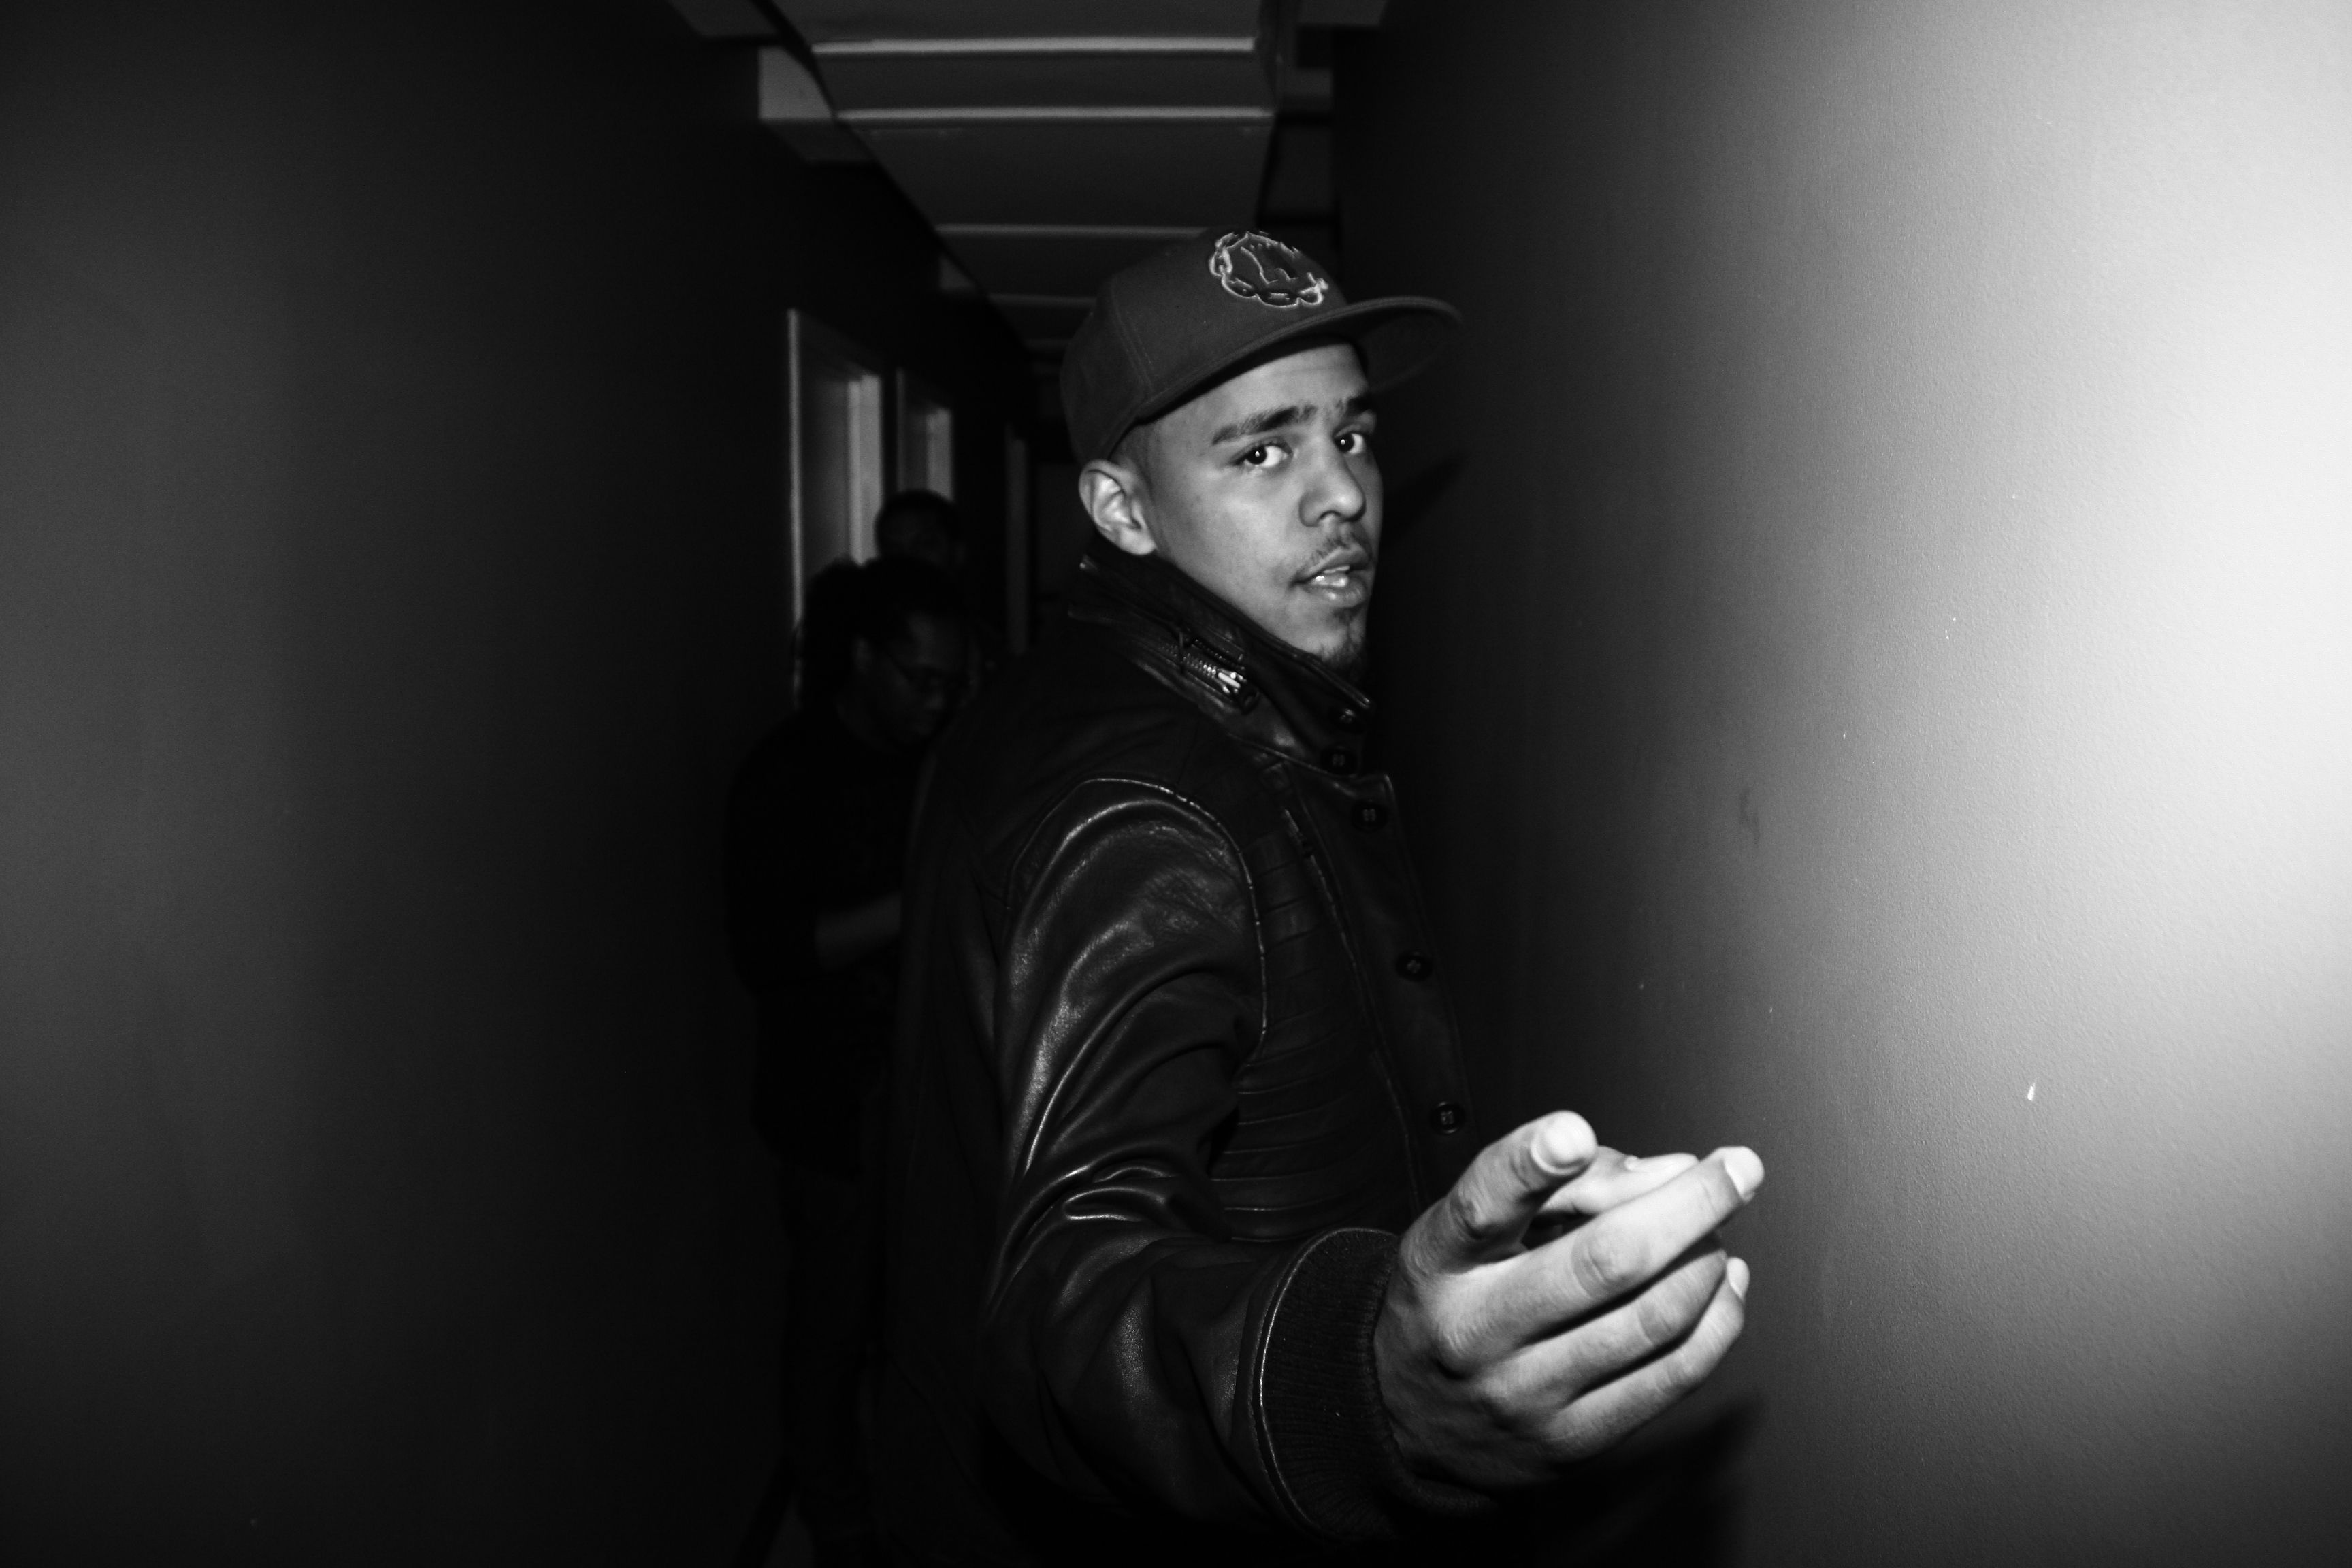 J Cole Wallpapers Backgrounds